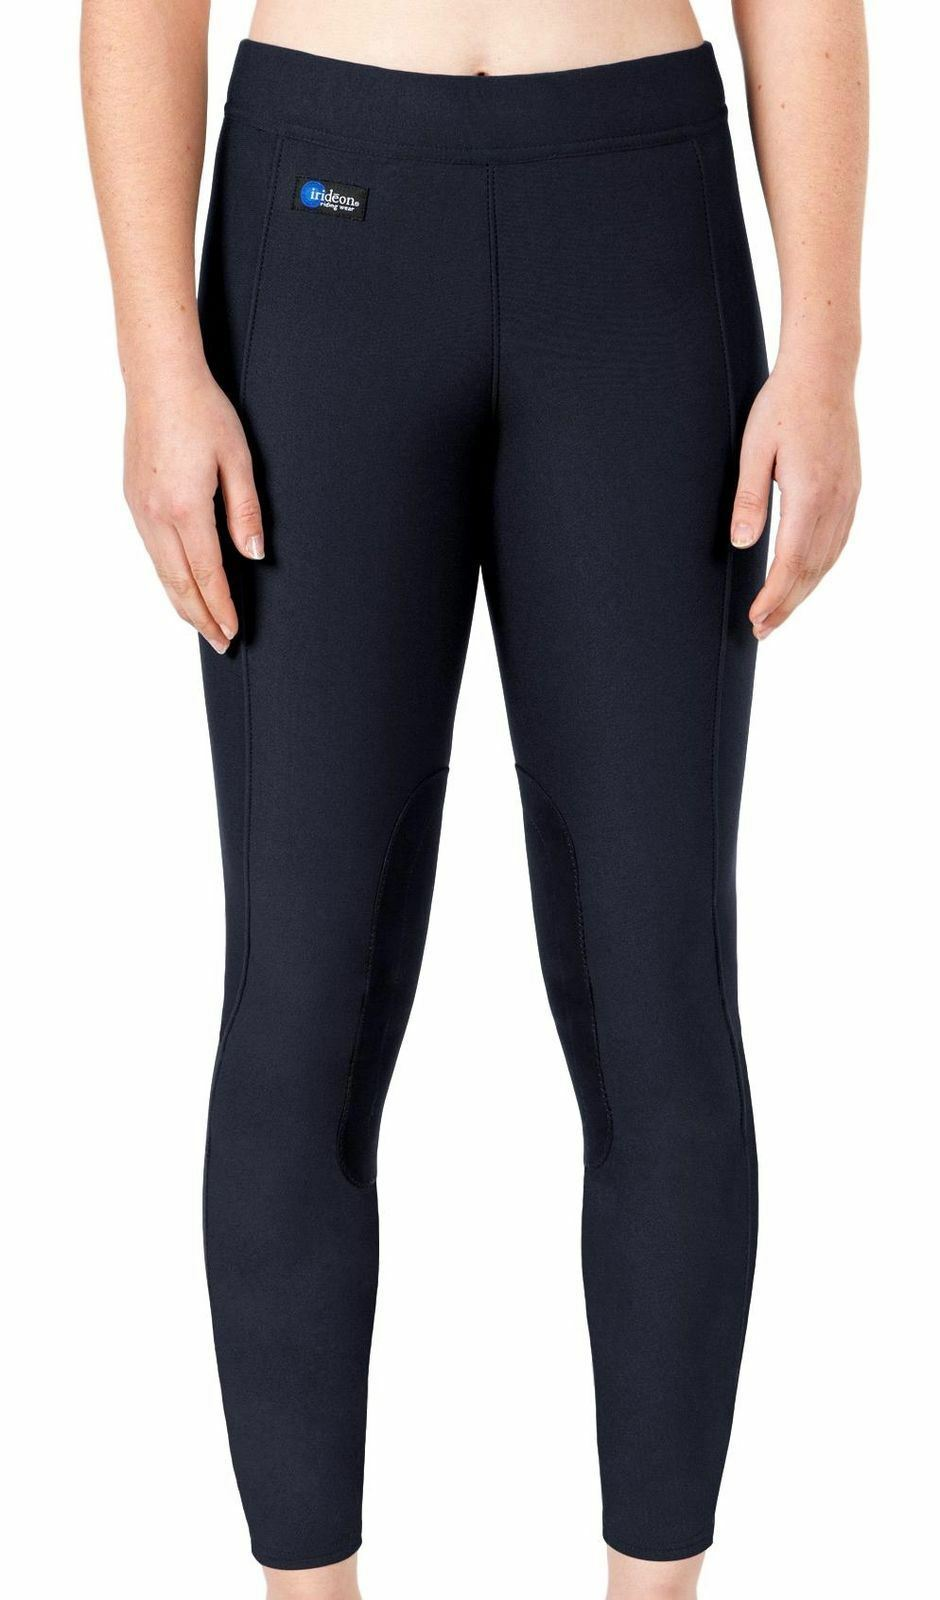 Irideon Powerstretch Plus Knee Patch Riding Breeches with Body-Contouring Panels